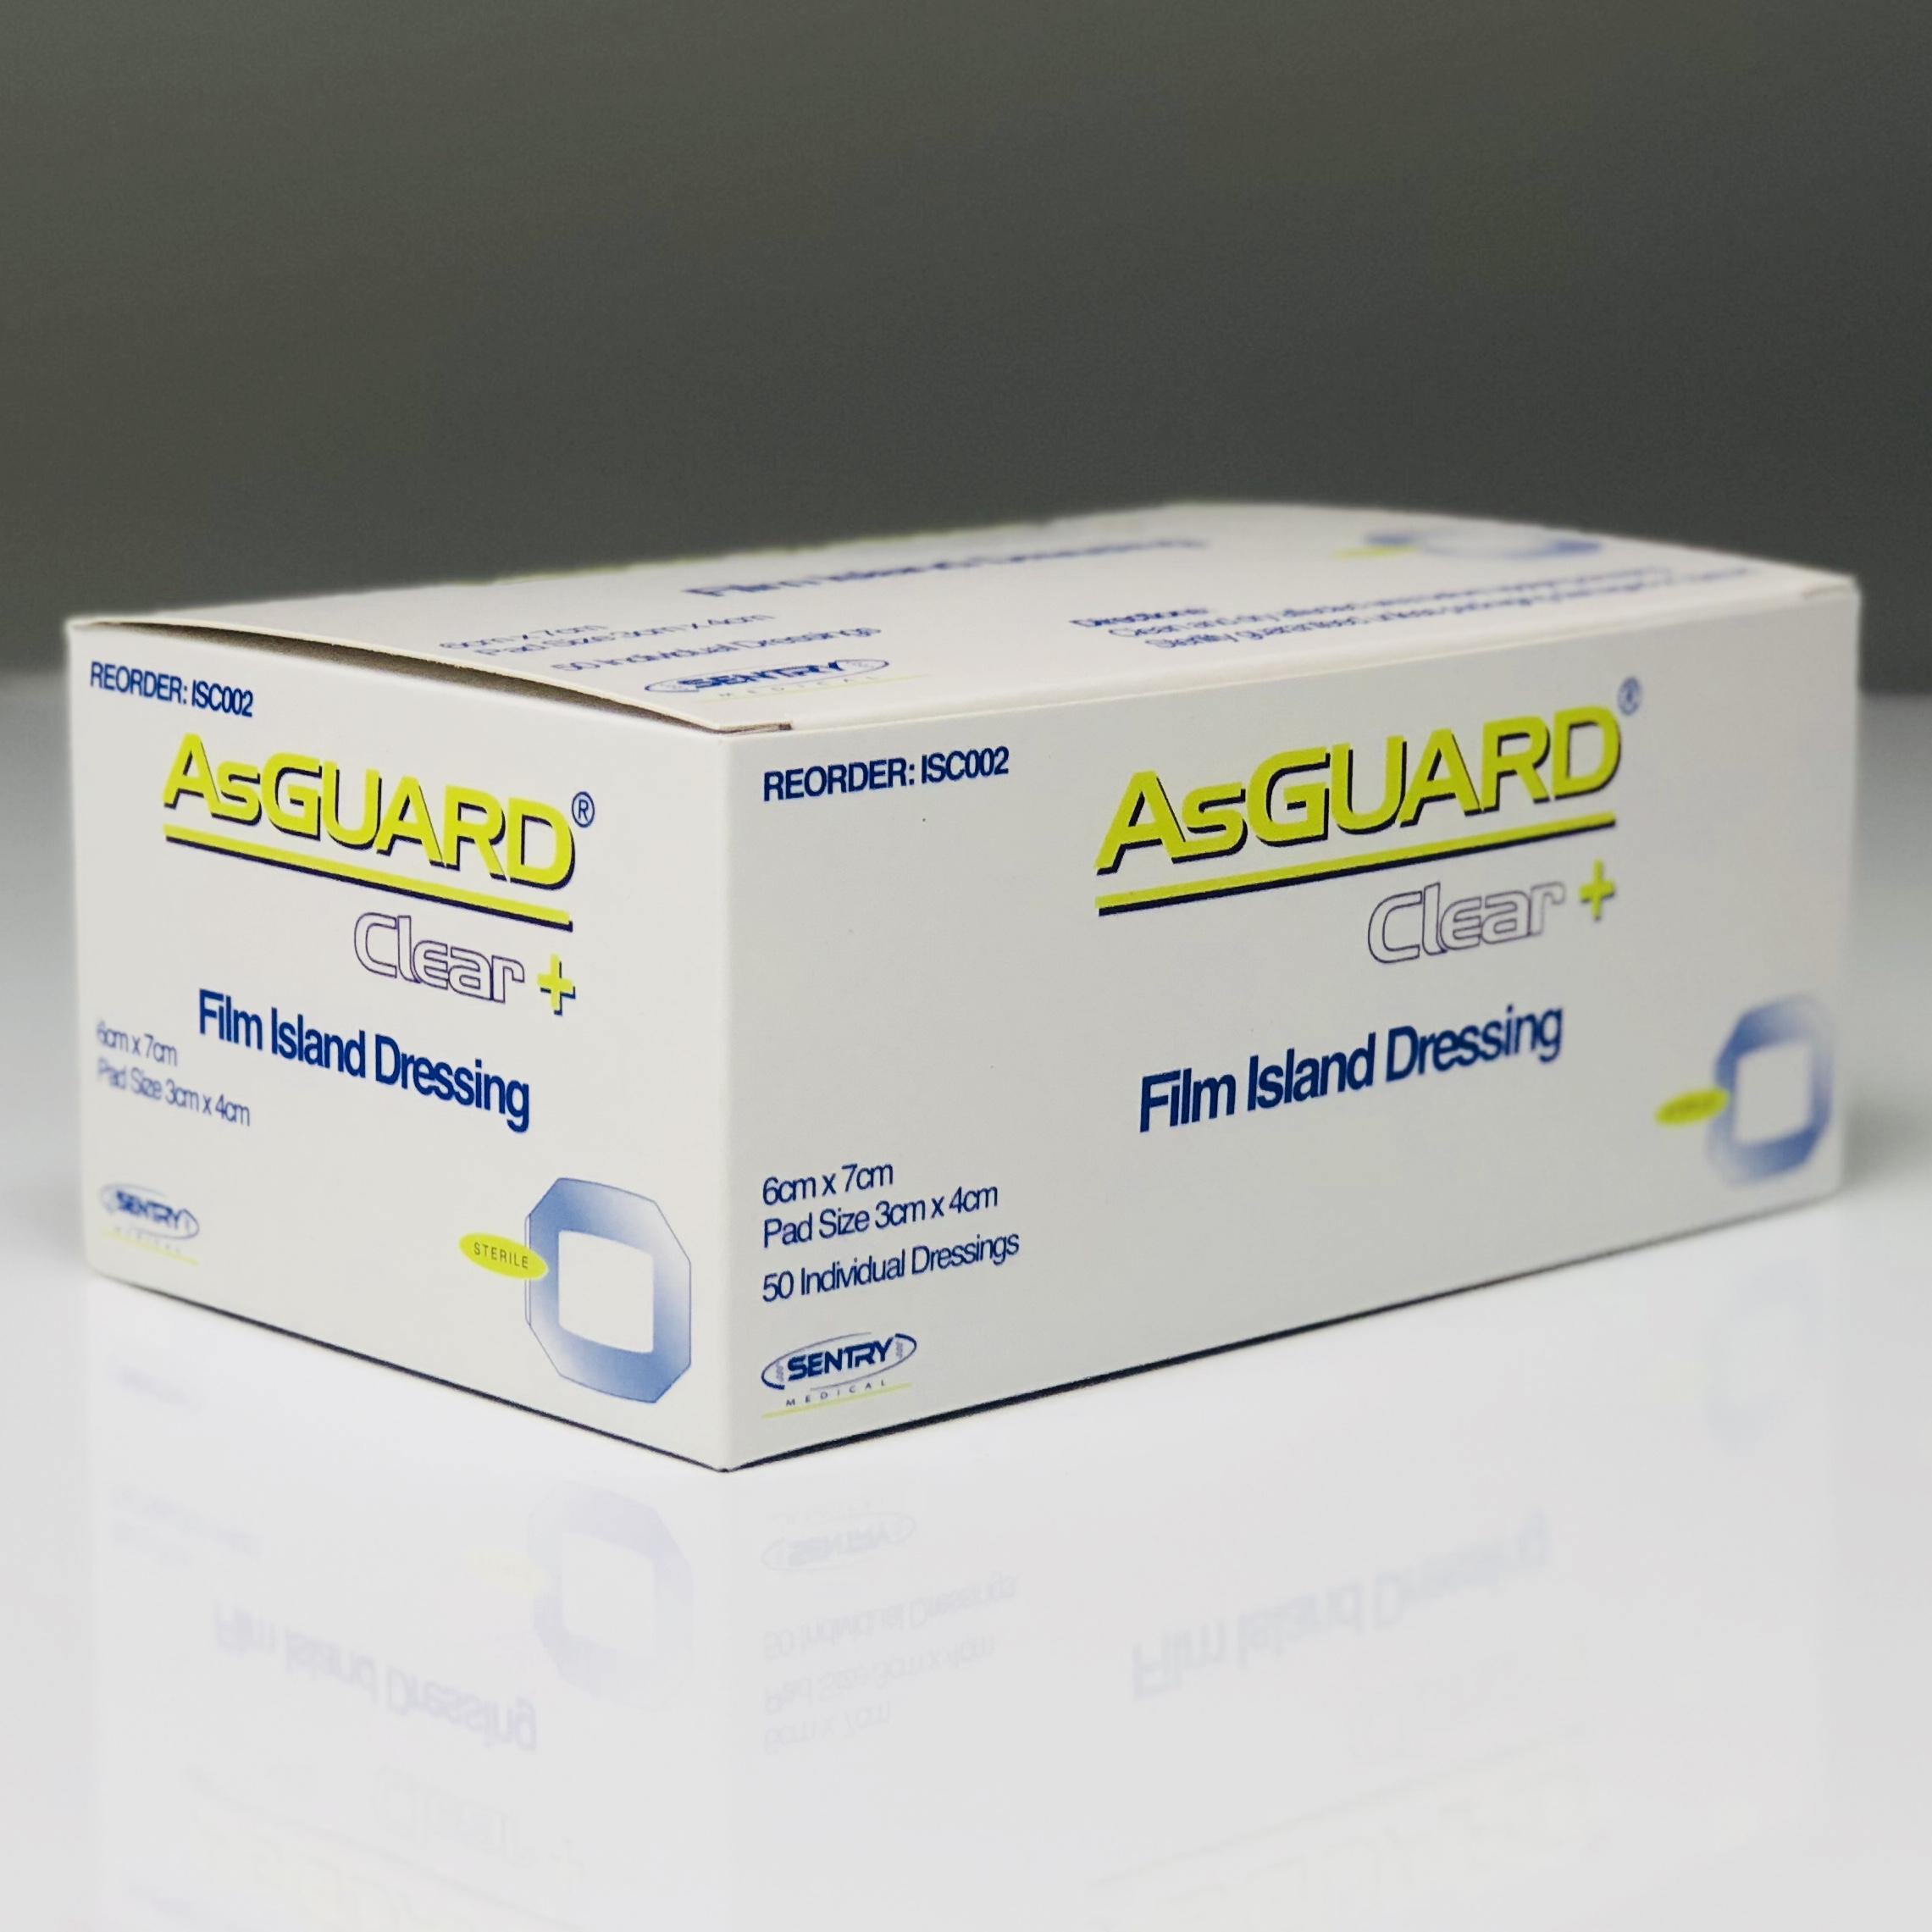 ASGUARD CLEAR+ FILM ISLAND 6CMx7CM, BOX 50